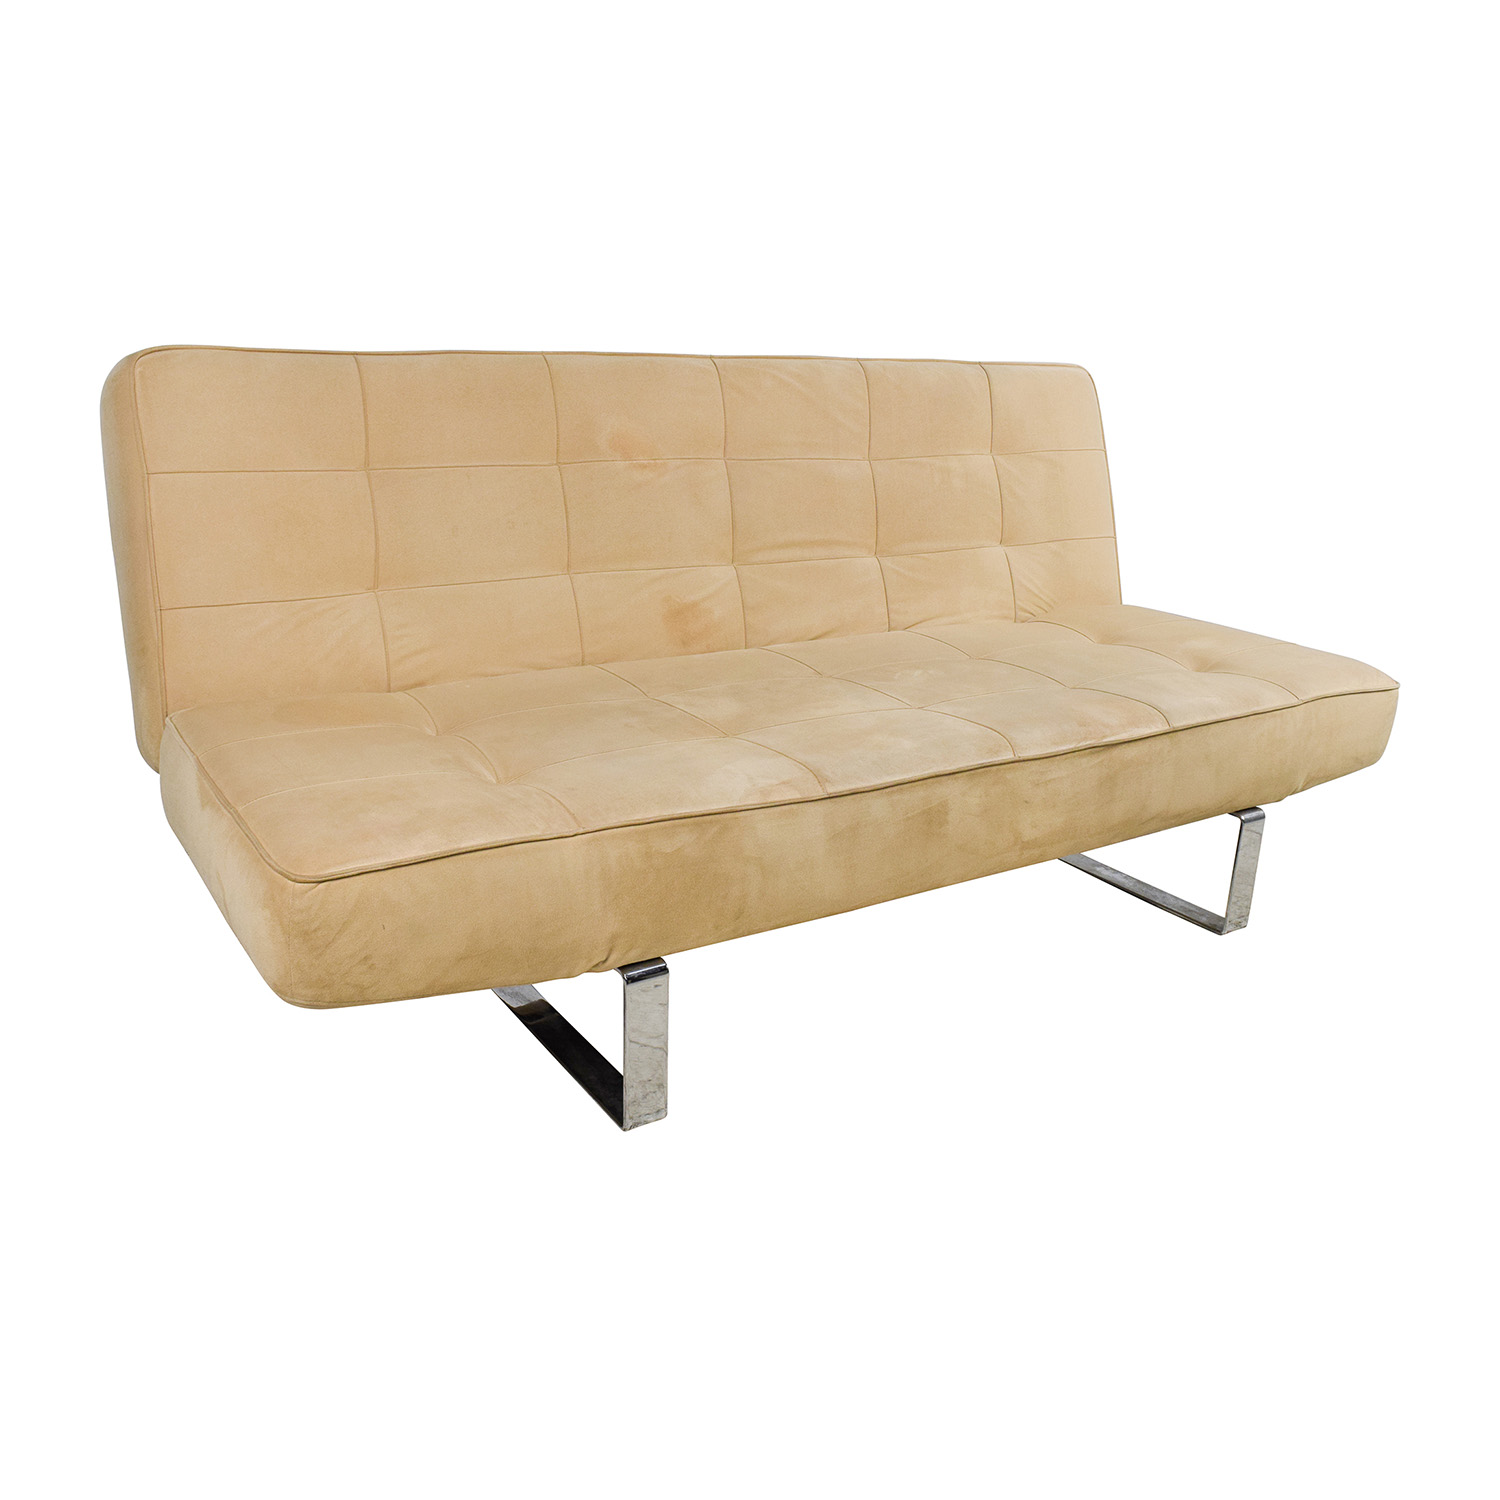 boconcept sleeper sofa review make a rustic table 62 off zen beige sofas